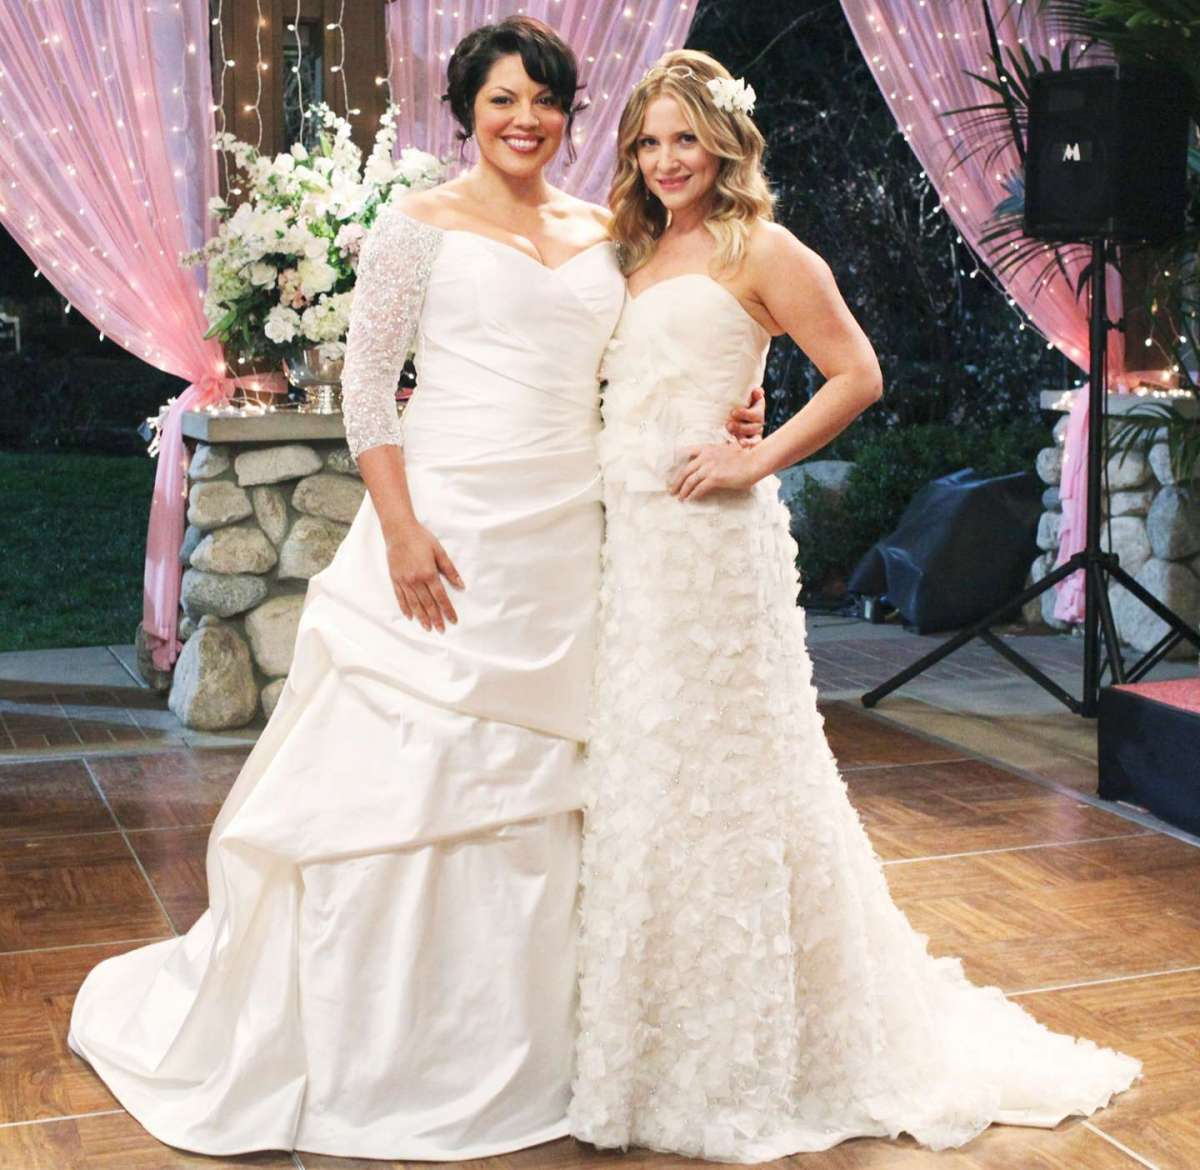 Gli abiti da sposa di Callie e Arizona in Grey's Anatomy